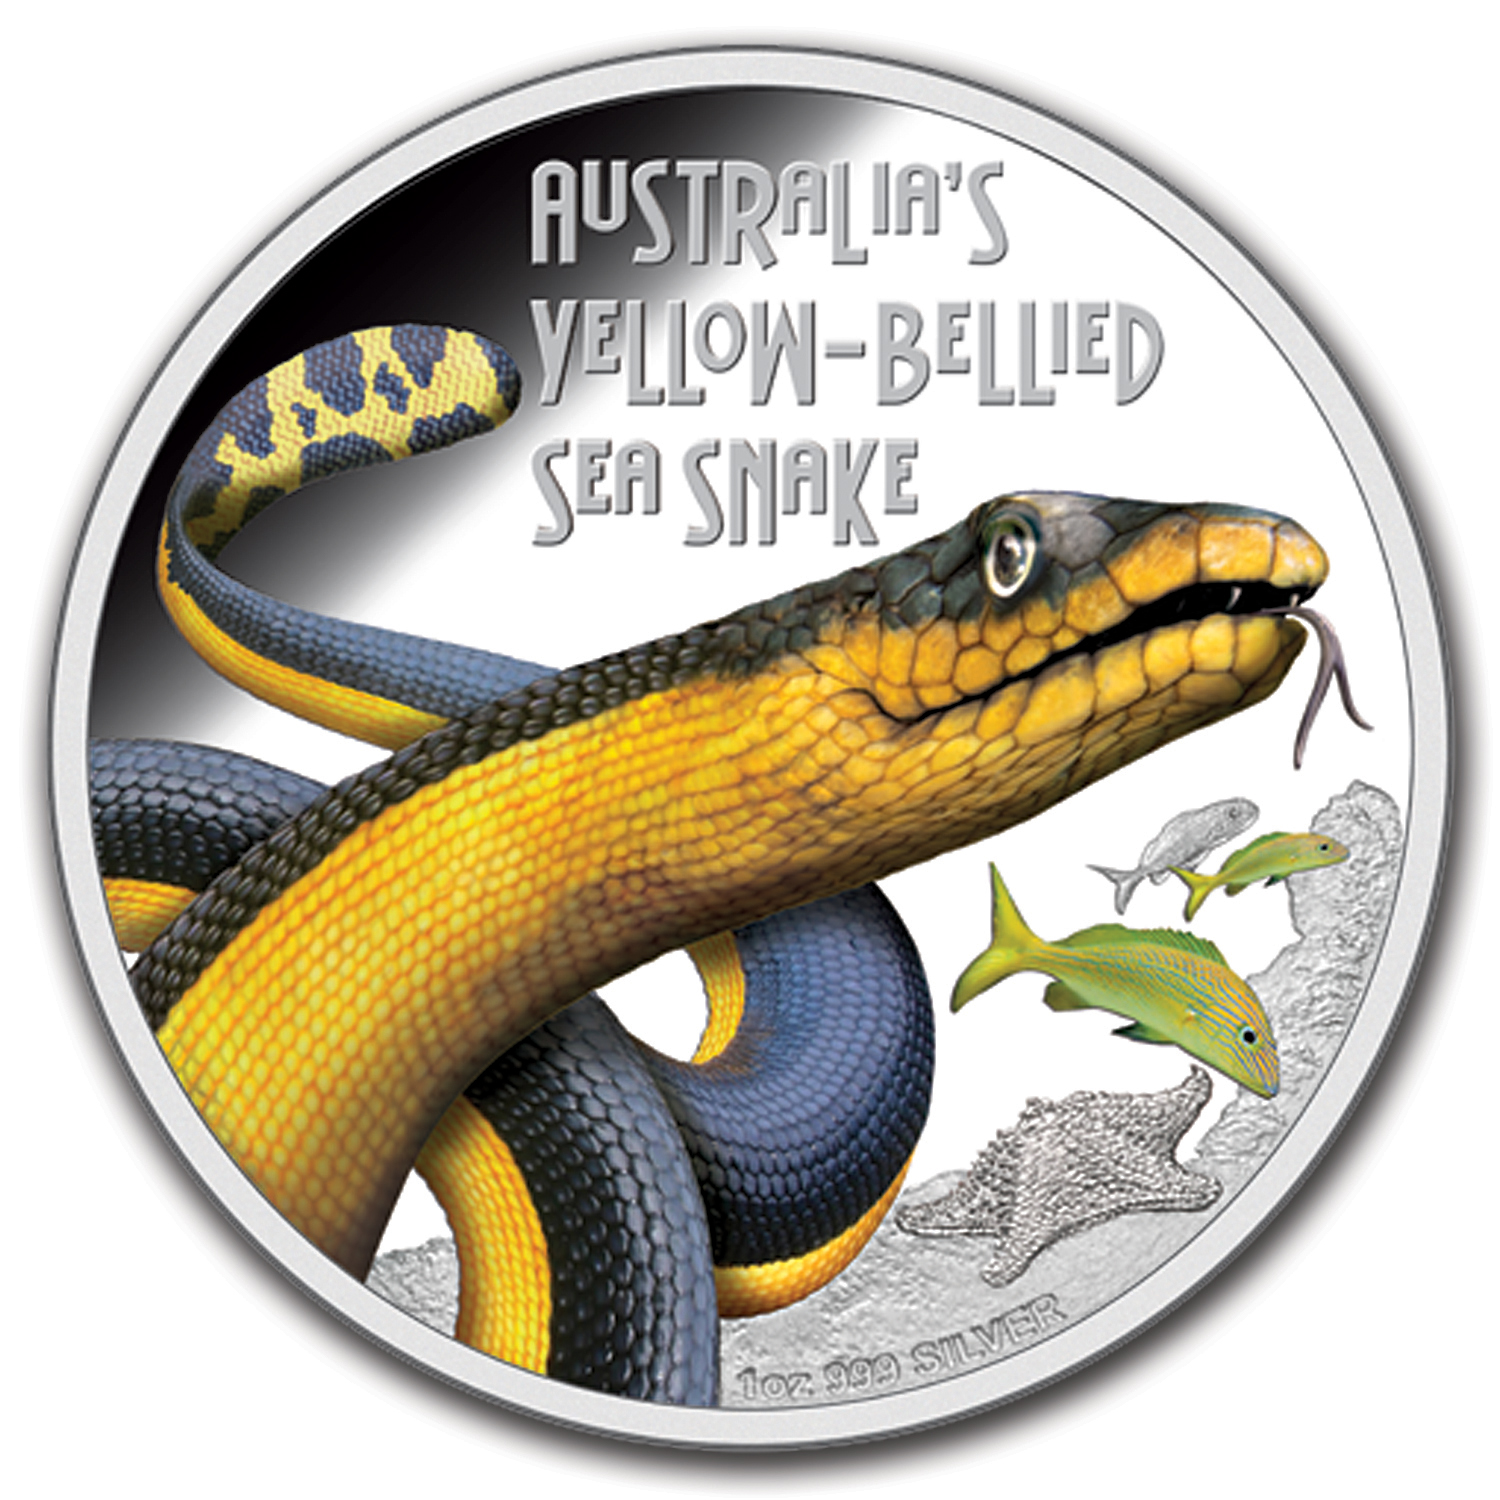 2013 1 oz Silver Australian Yellow-Bellied Snake Proof